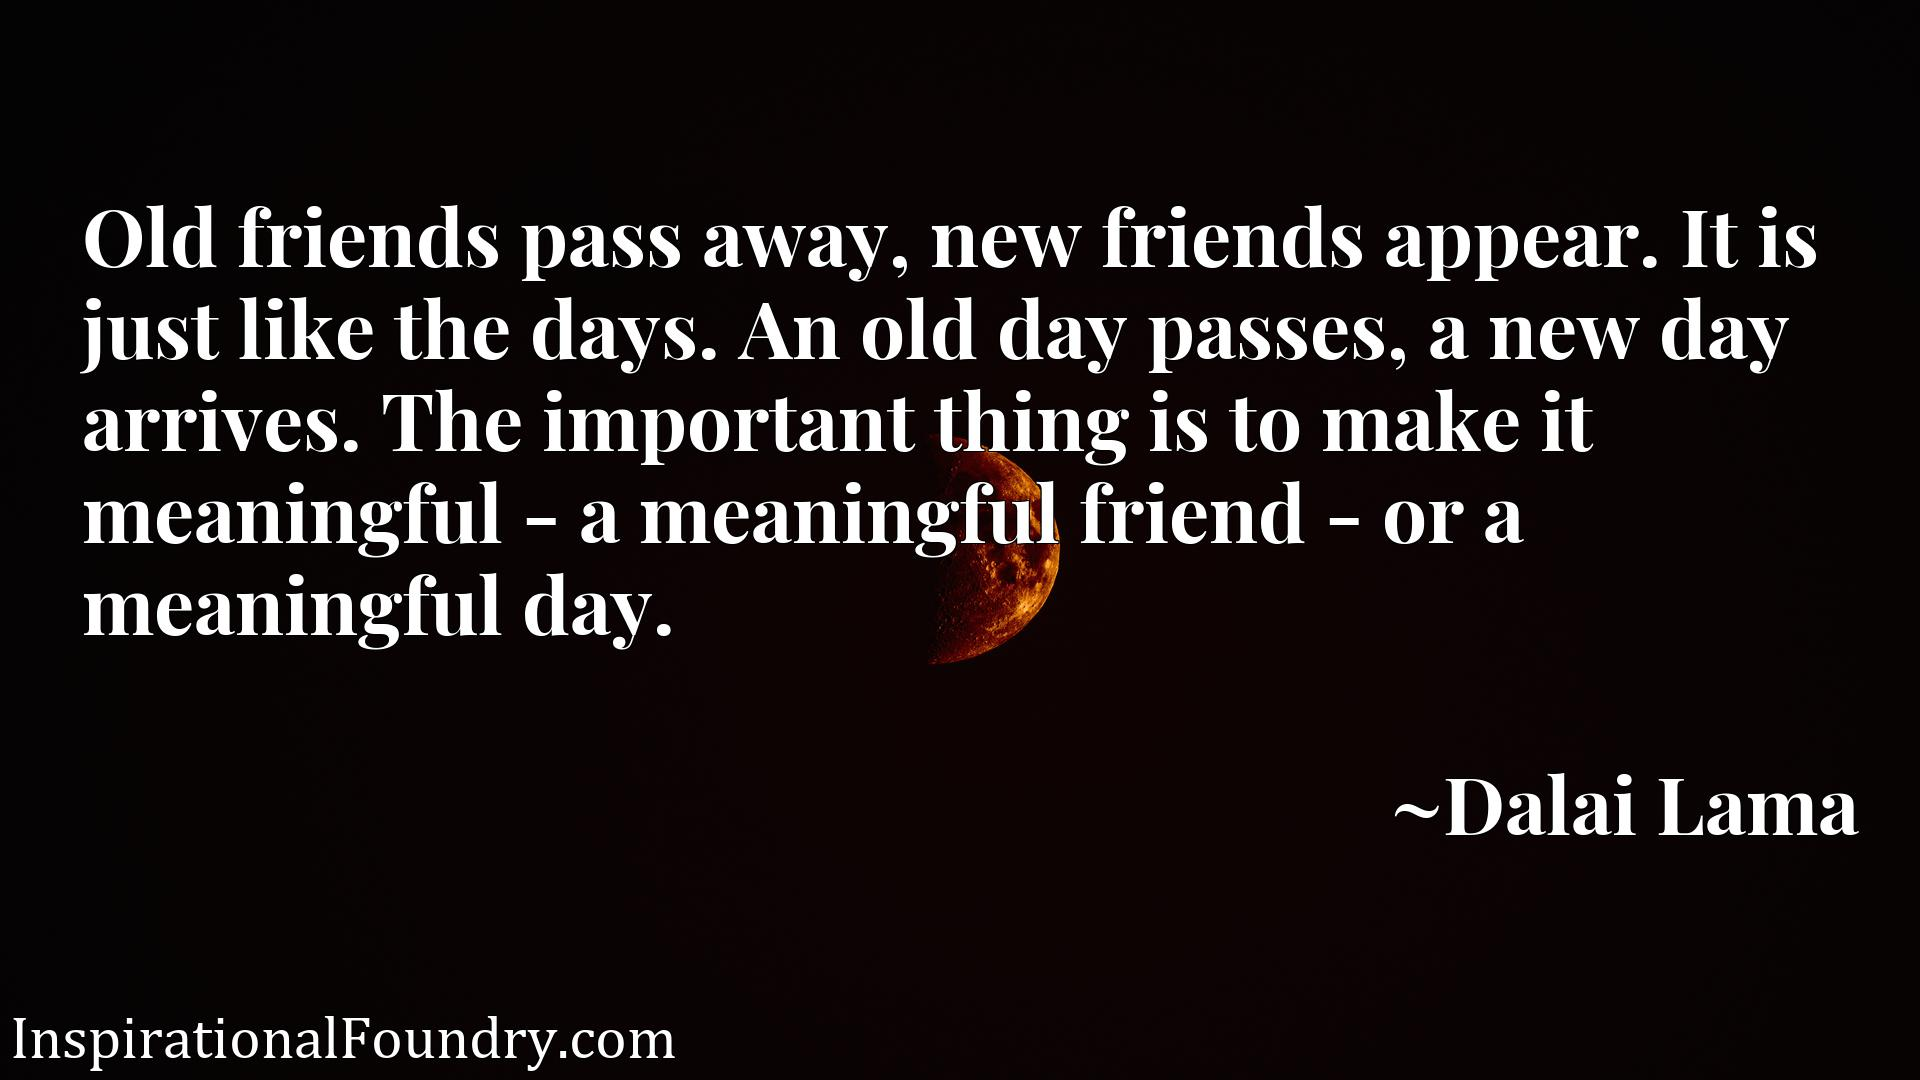 Old friends pass away, new friends appear. It is just like the days. An old day passes, a new day arrives. The important thing is to make it meaningful - a meaningful friend - or a meaningful day.